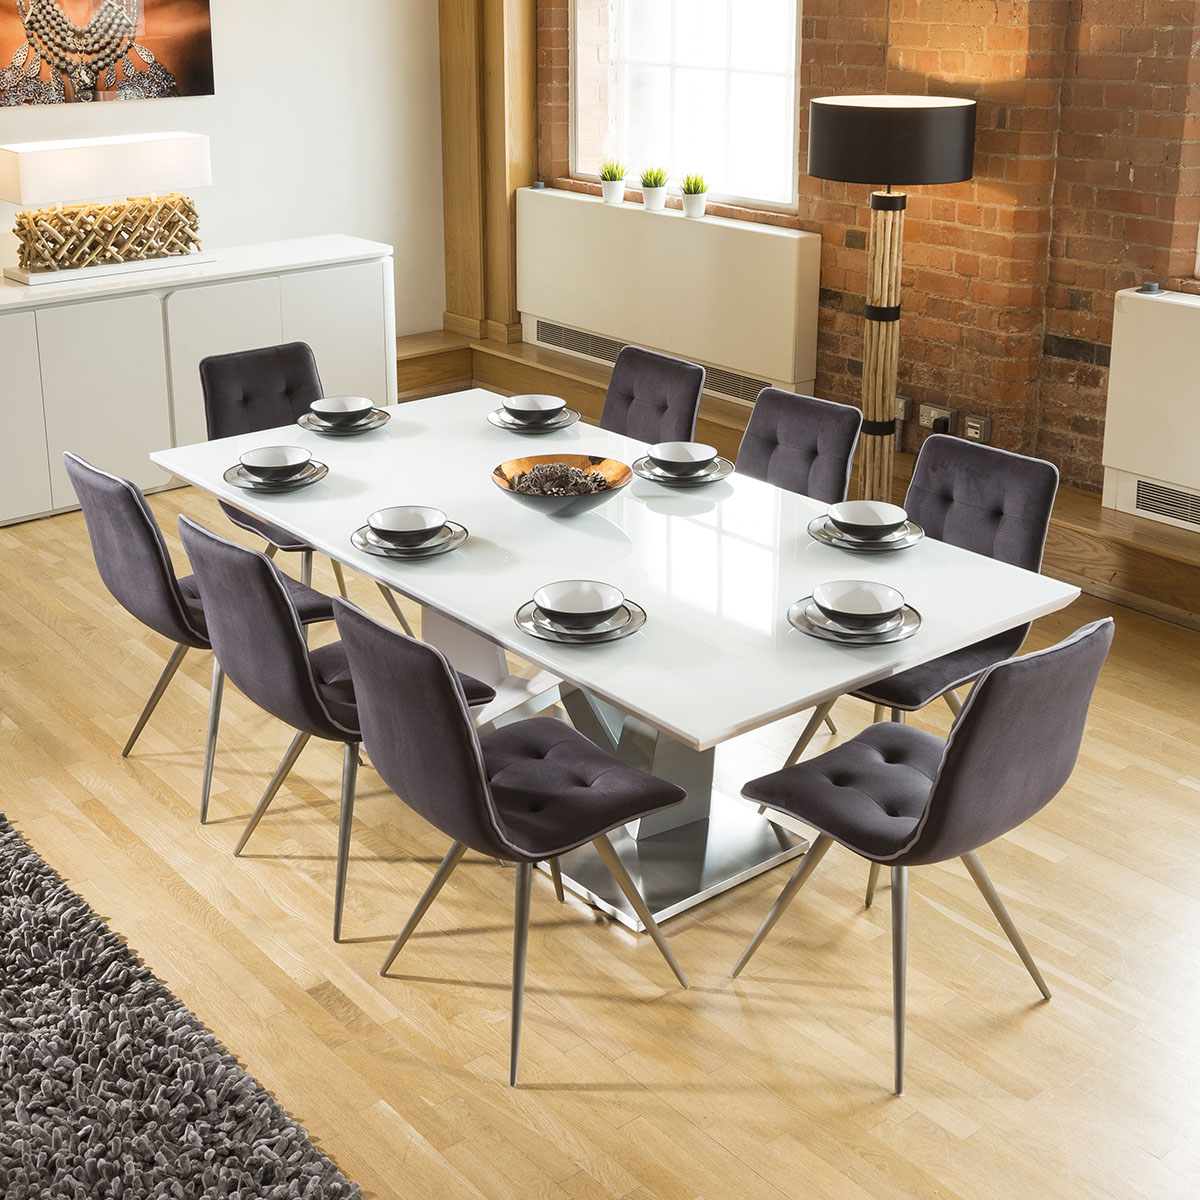 Glass Dining Table For 8: Large 8 Seater Dining Set 2.2mt White Glass Top Table 8